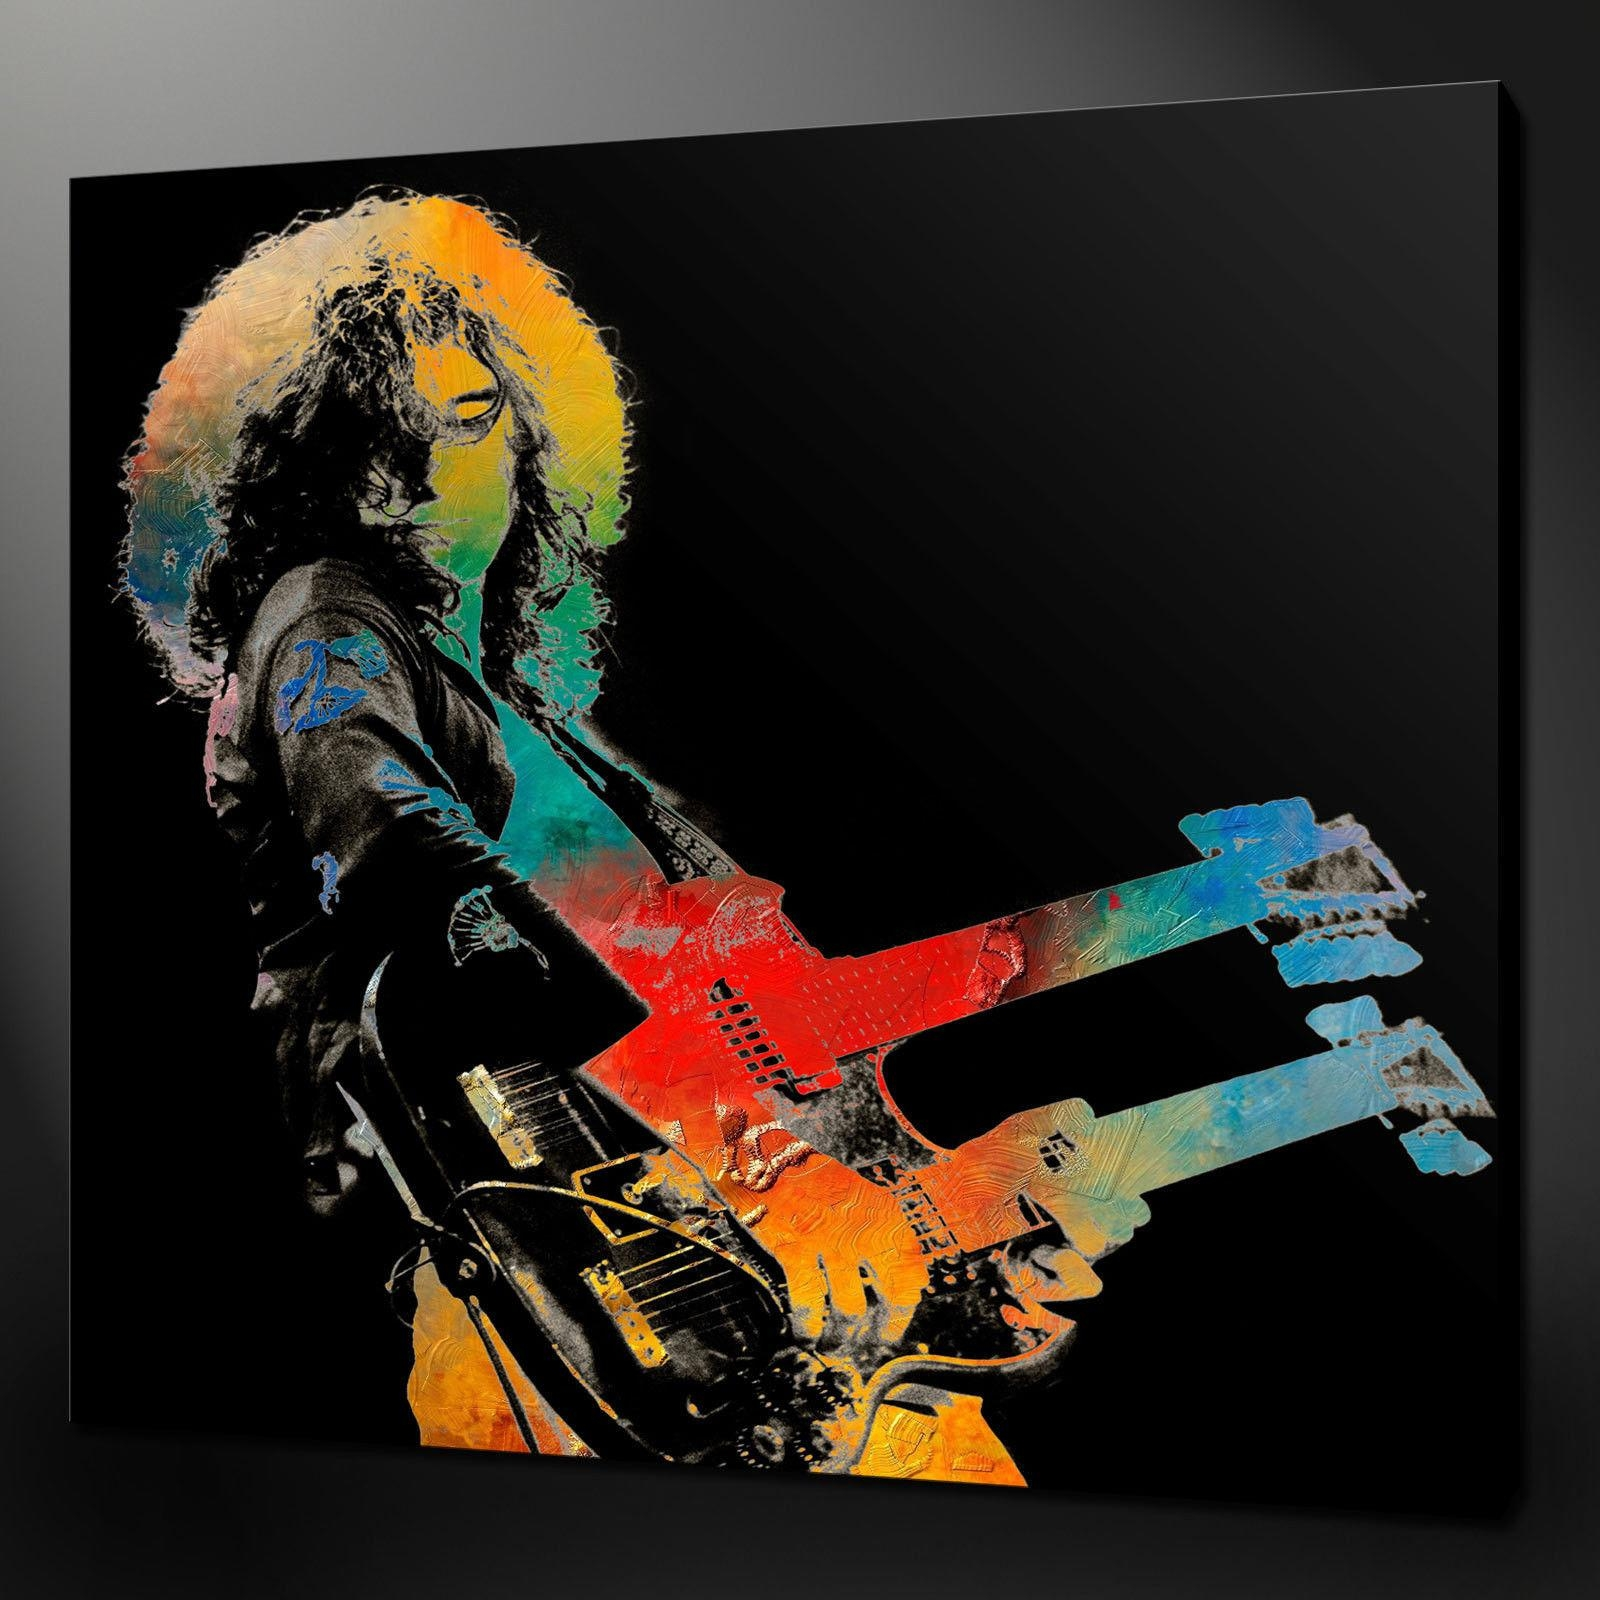 Robert Plant Led Zeppelin Canvas Wall Art Pictures Prints Variety Pertaining To Led Zeppelin Wall Art (View 2 of 20)